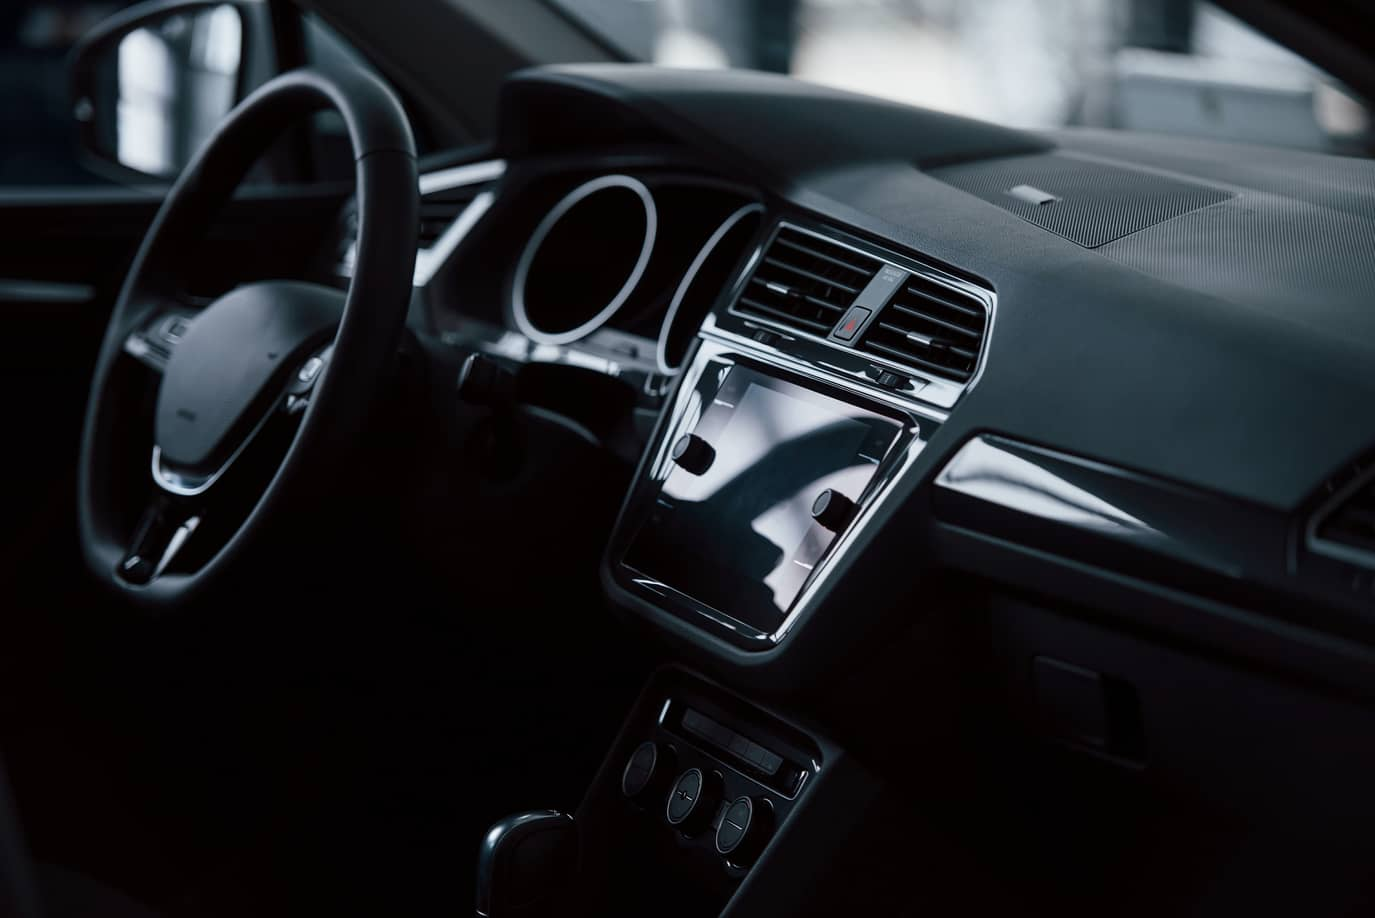 inside a brand new car with total black color